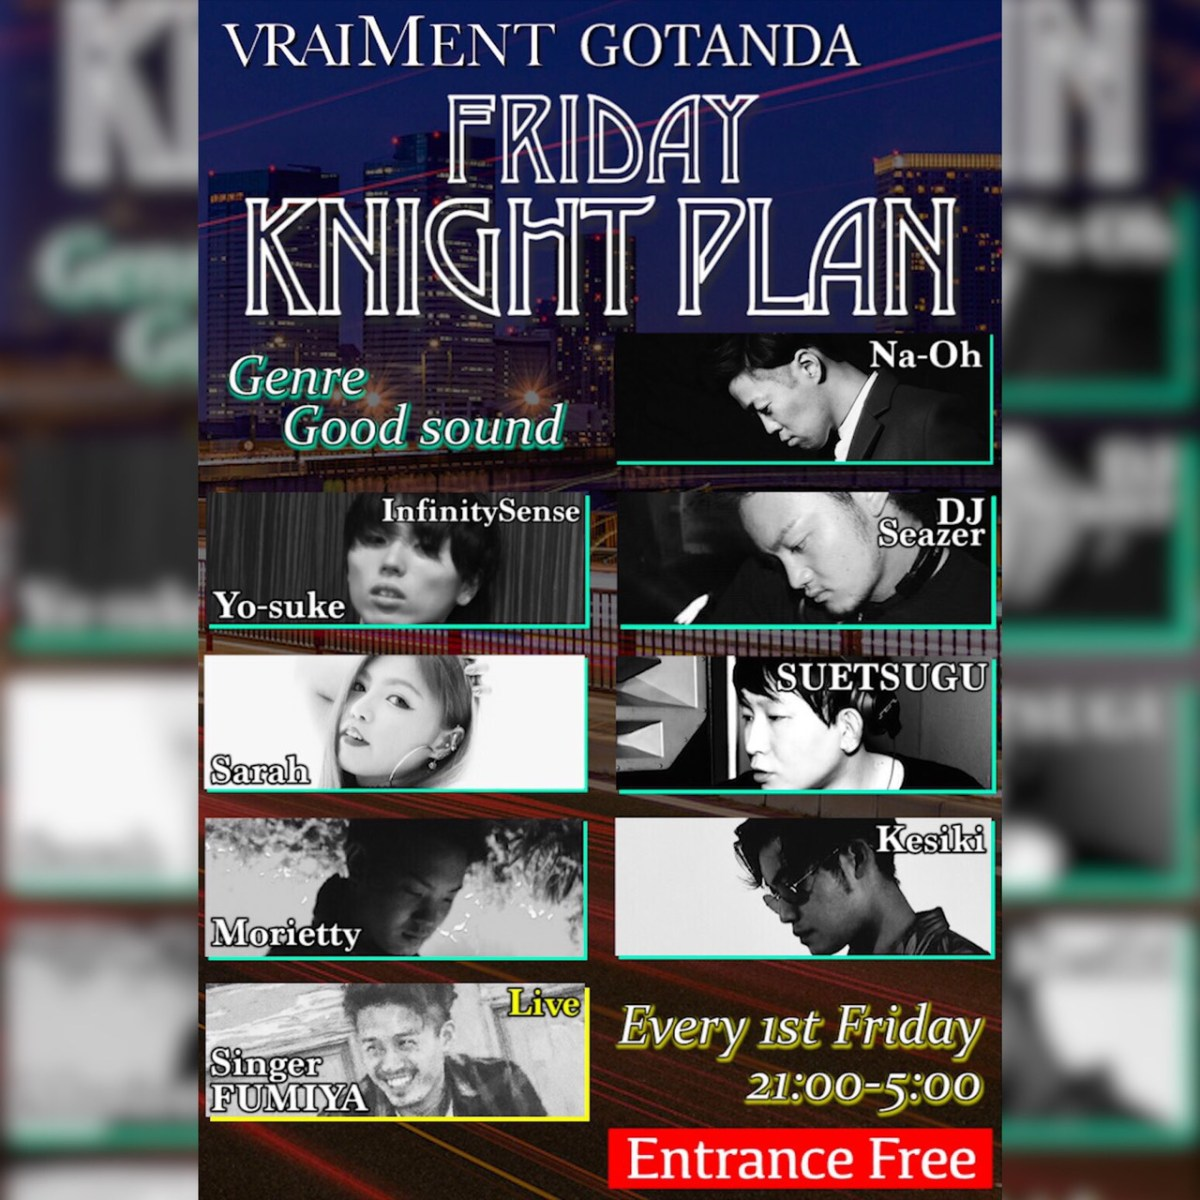 【3月1日】FRIDAY KNIGHT PLAN